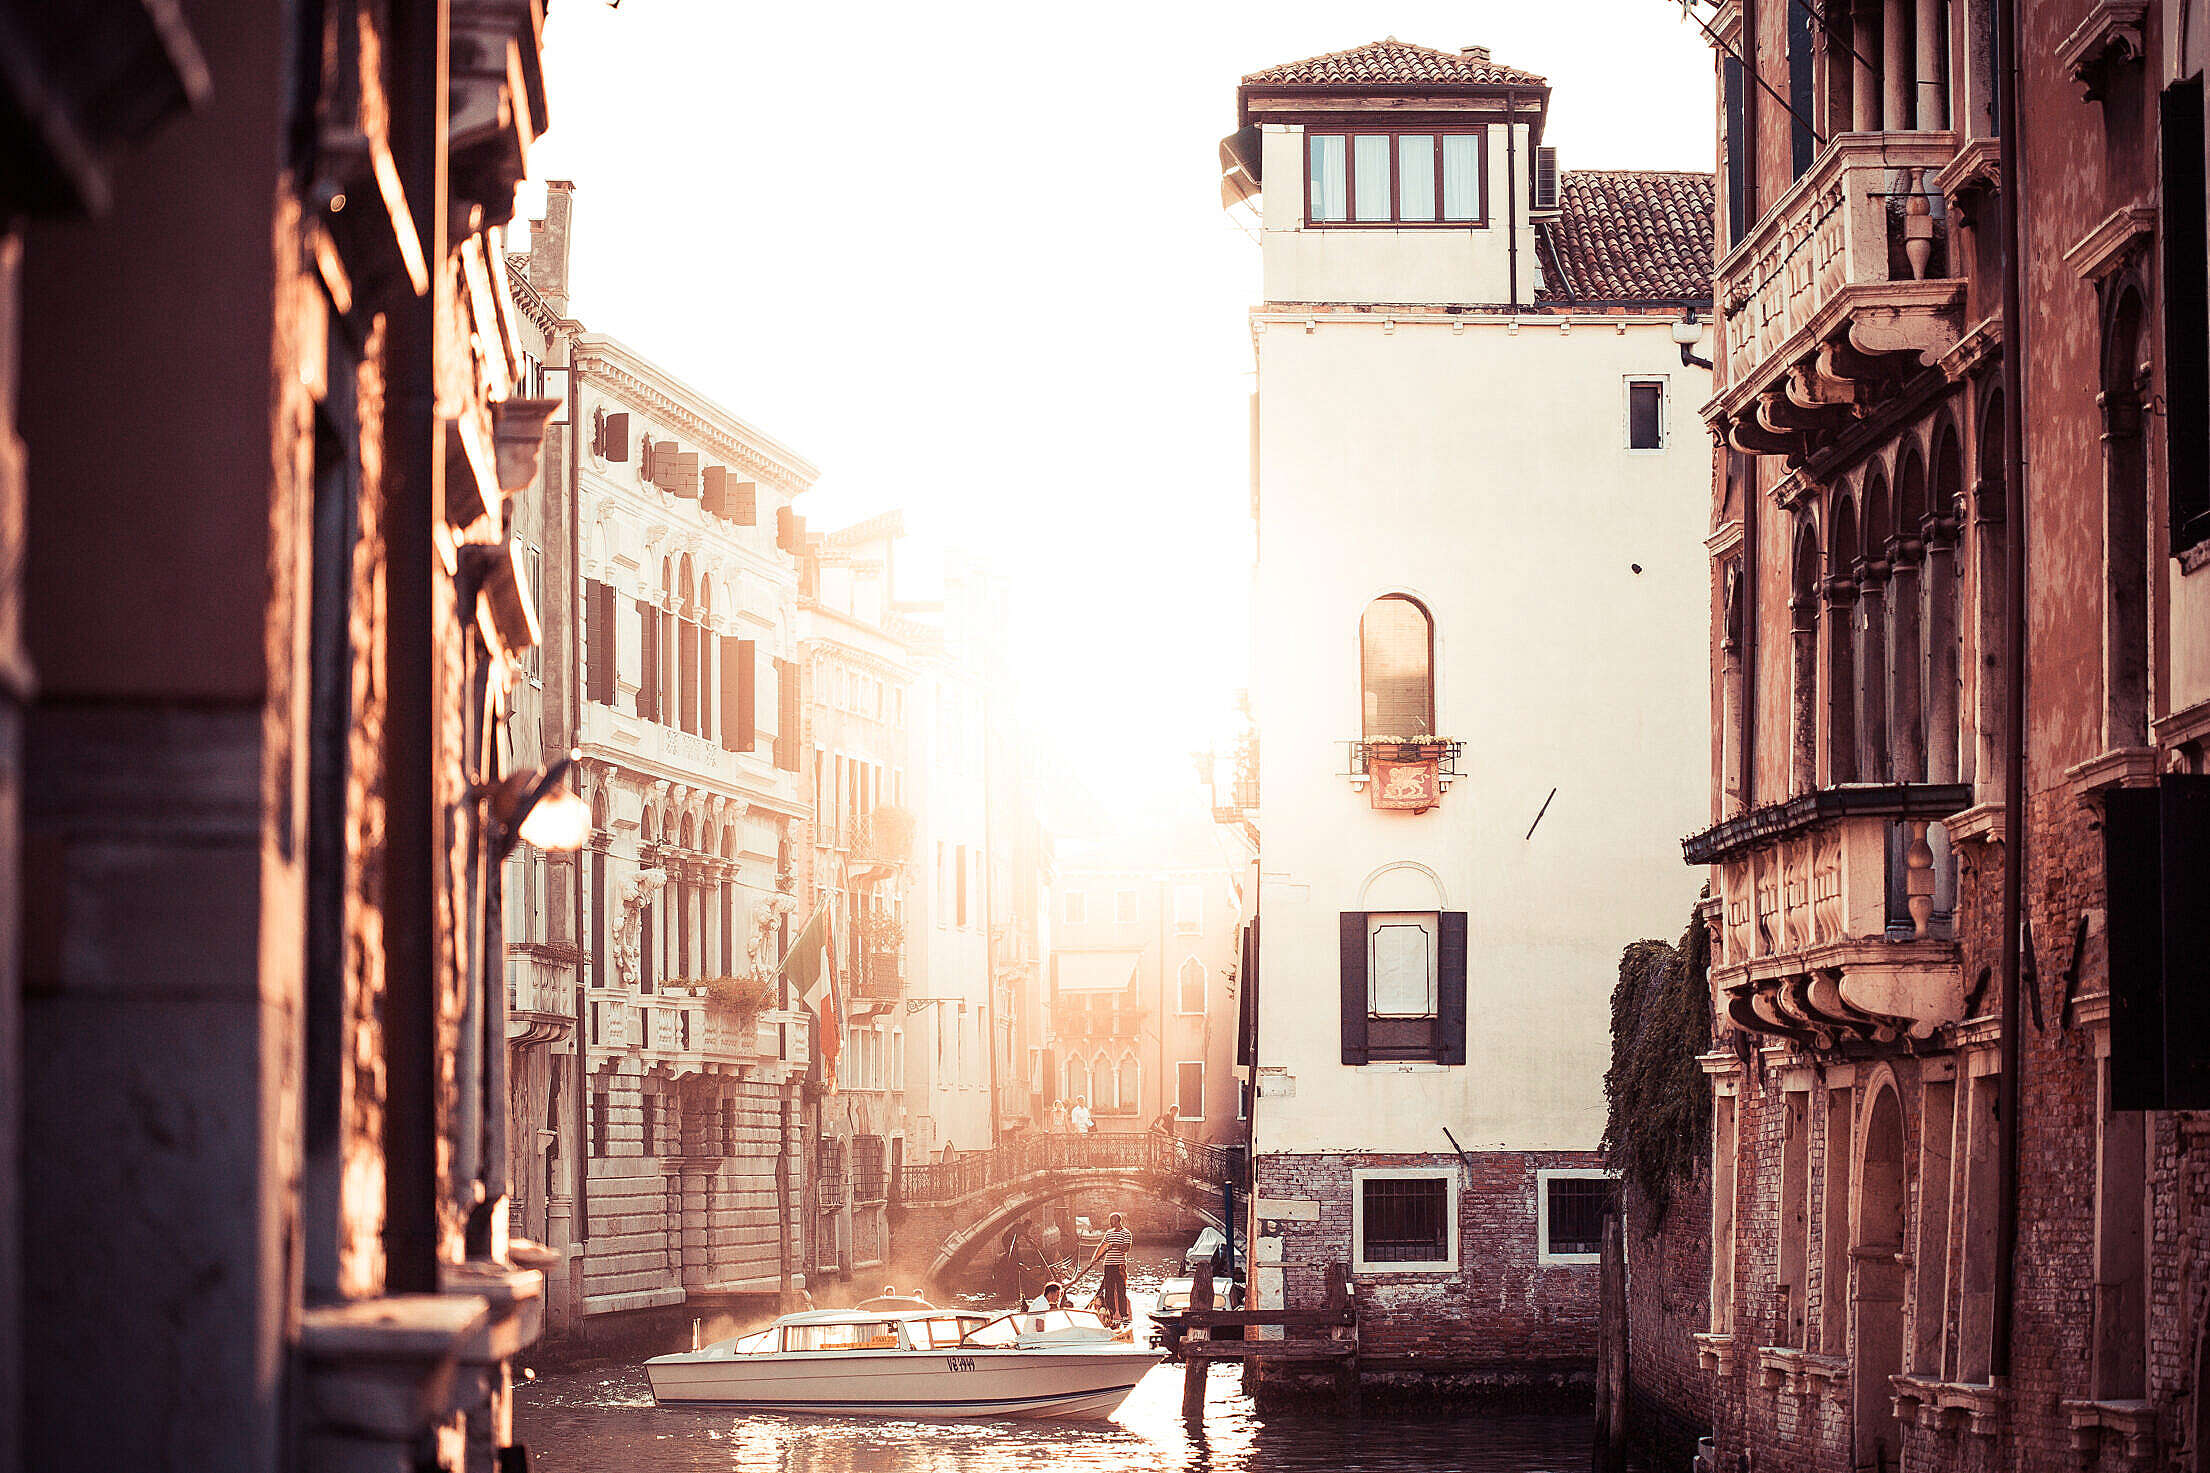 Street Canal Sunset in Venice, Italy Free Stock Photo